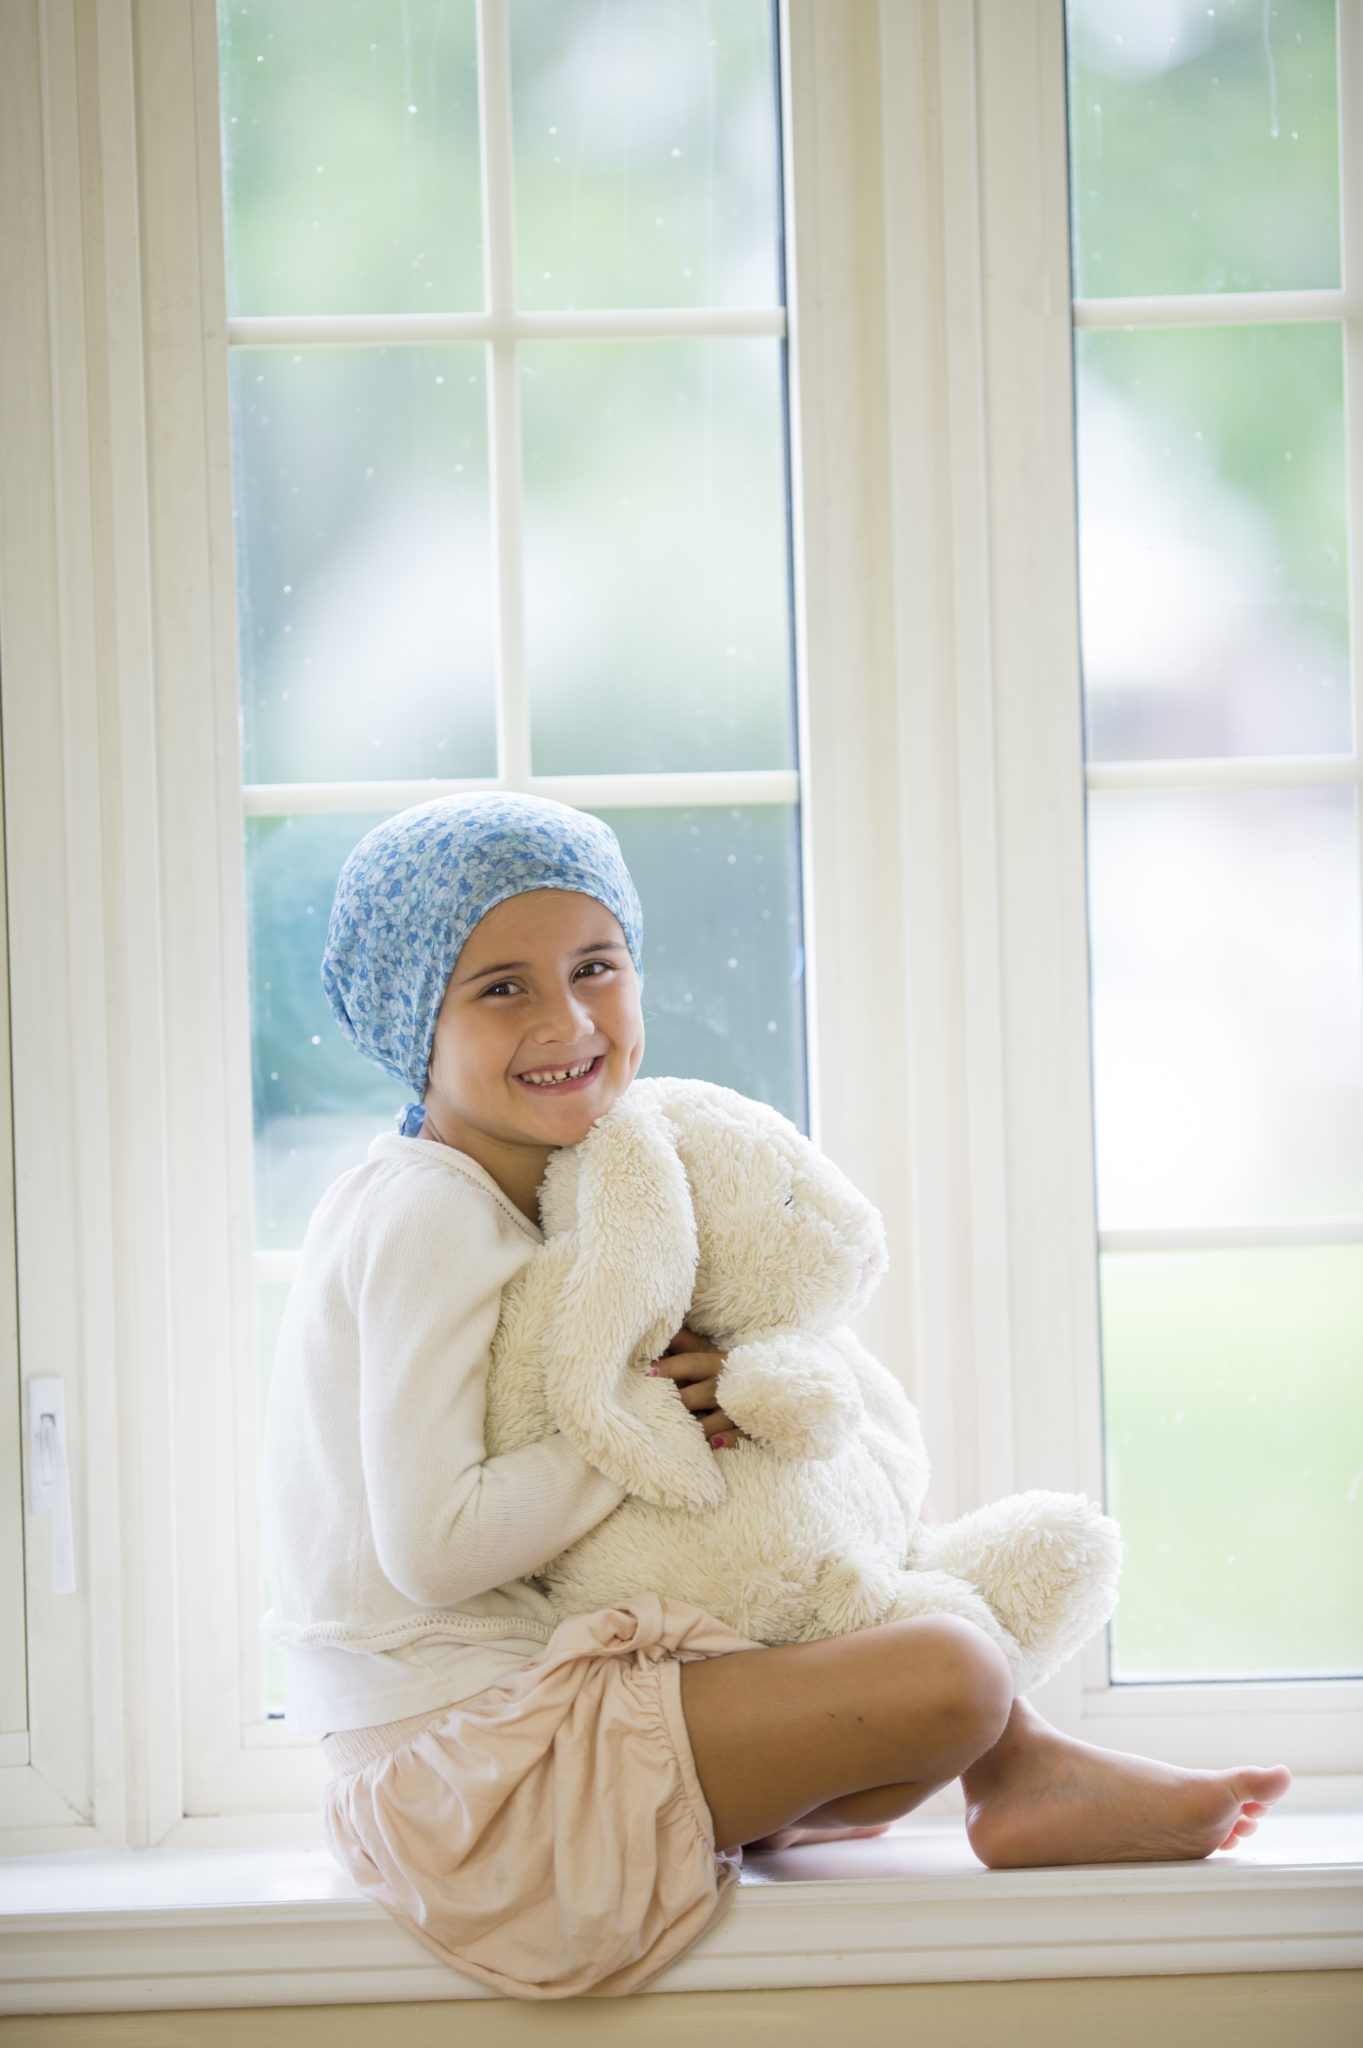 A little girl with cancer is sitting by the window and is looking at the camera. She is holding a stuffed animal.